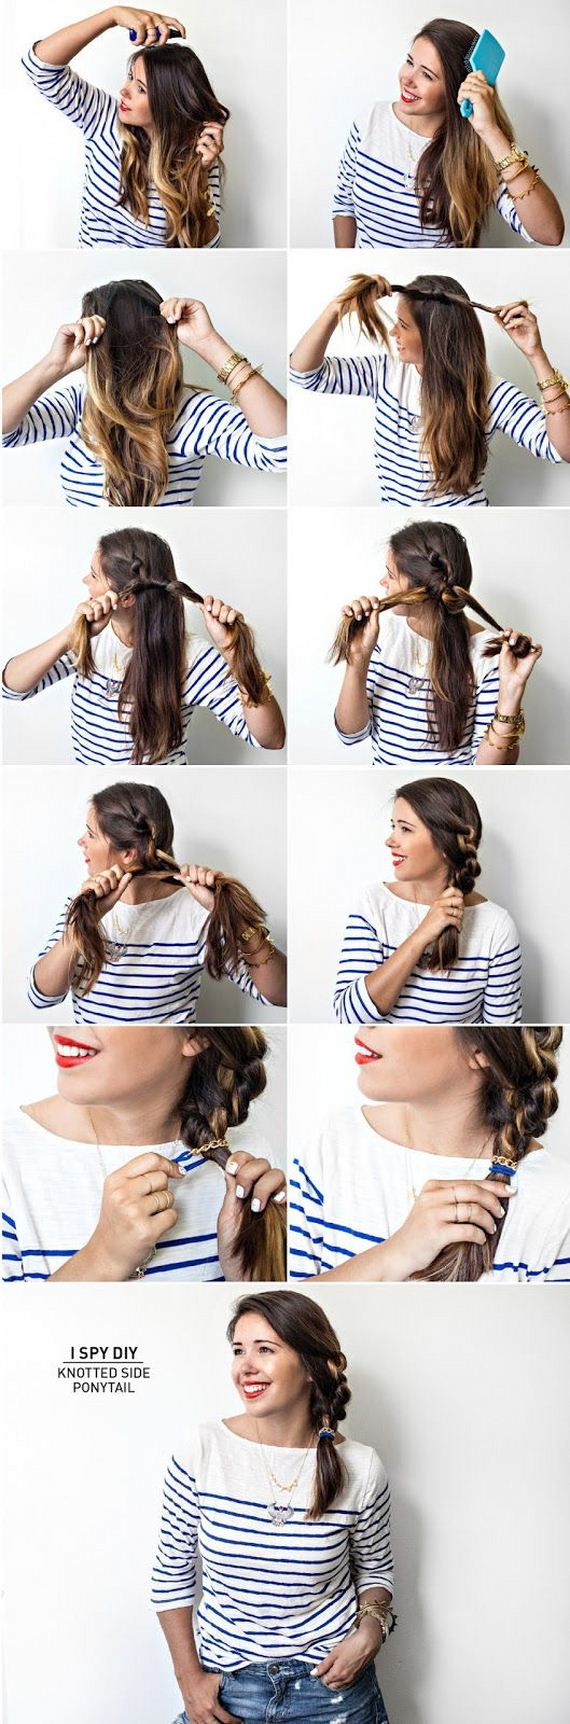 06-DIY-Side-Hairstyles